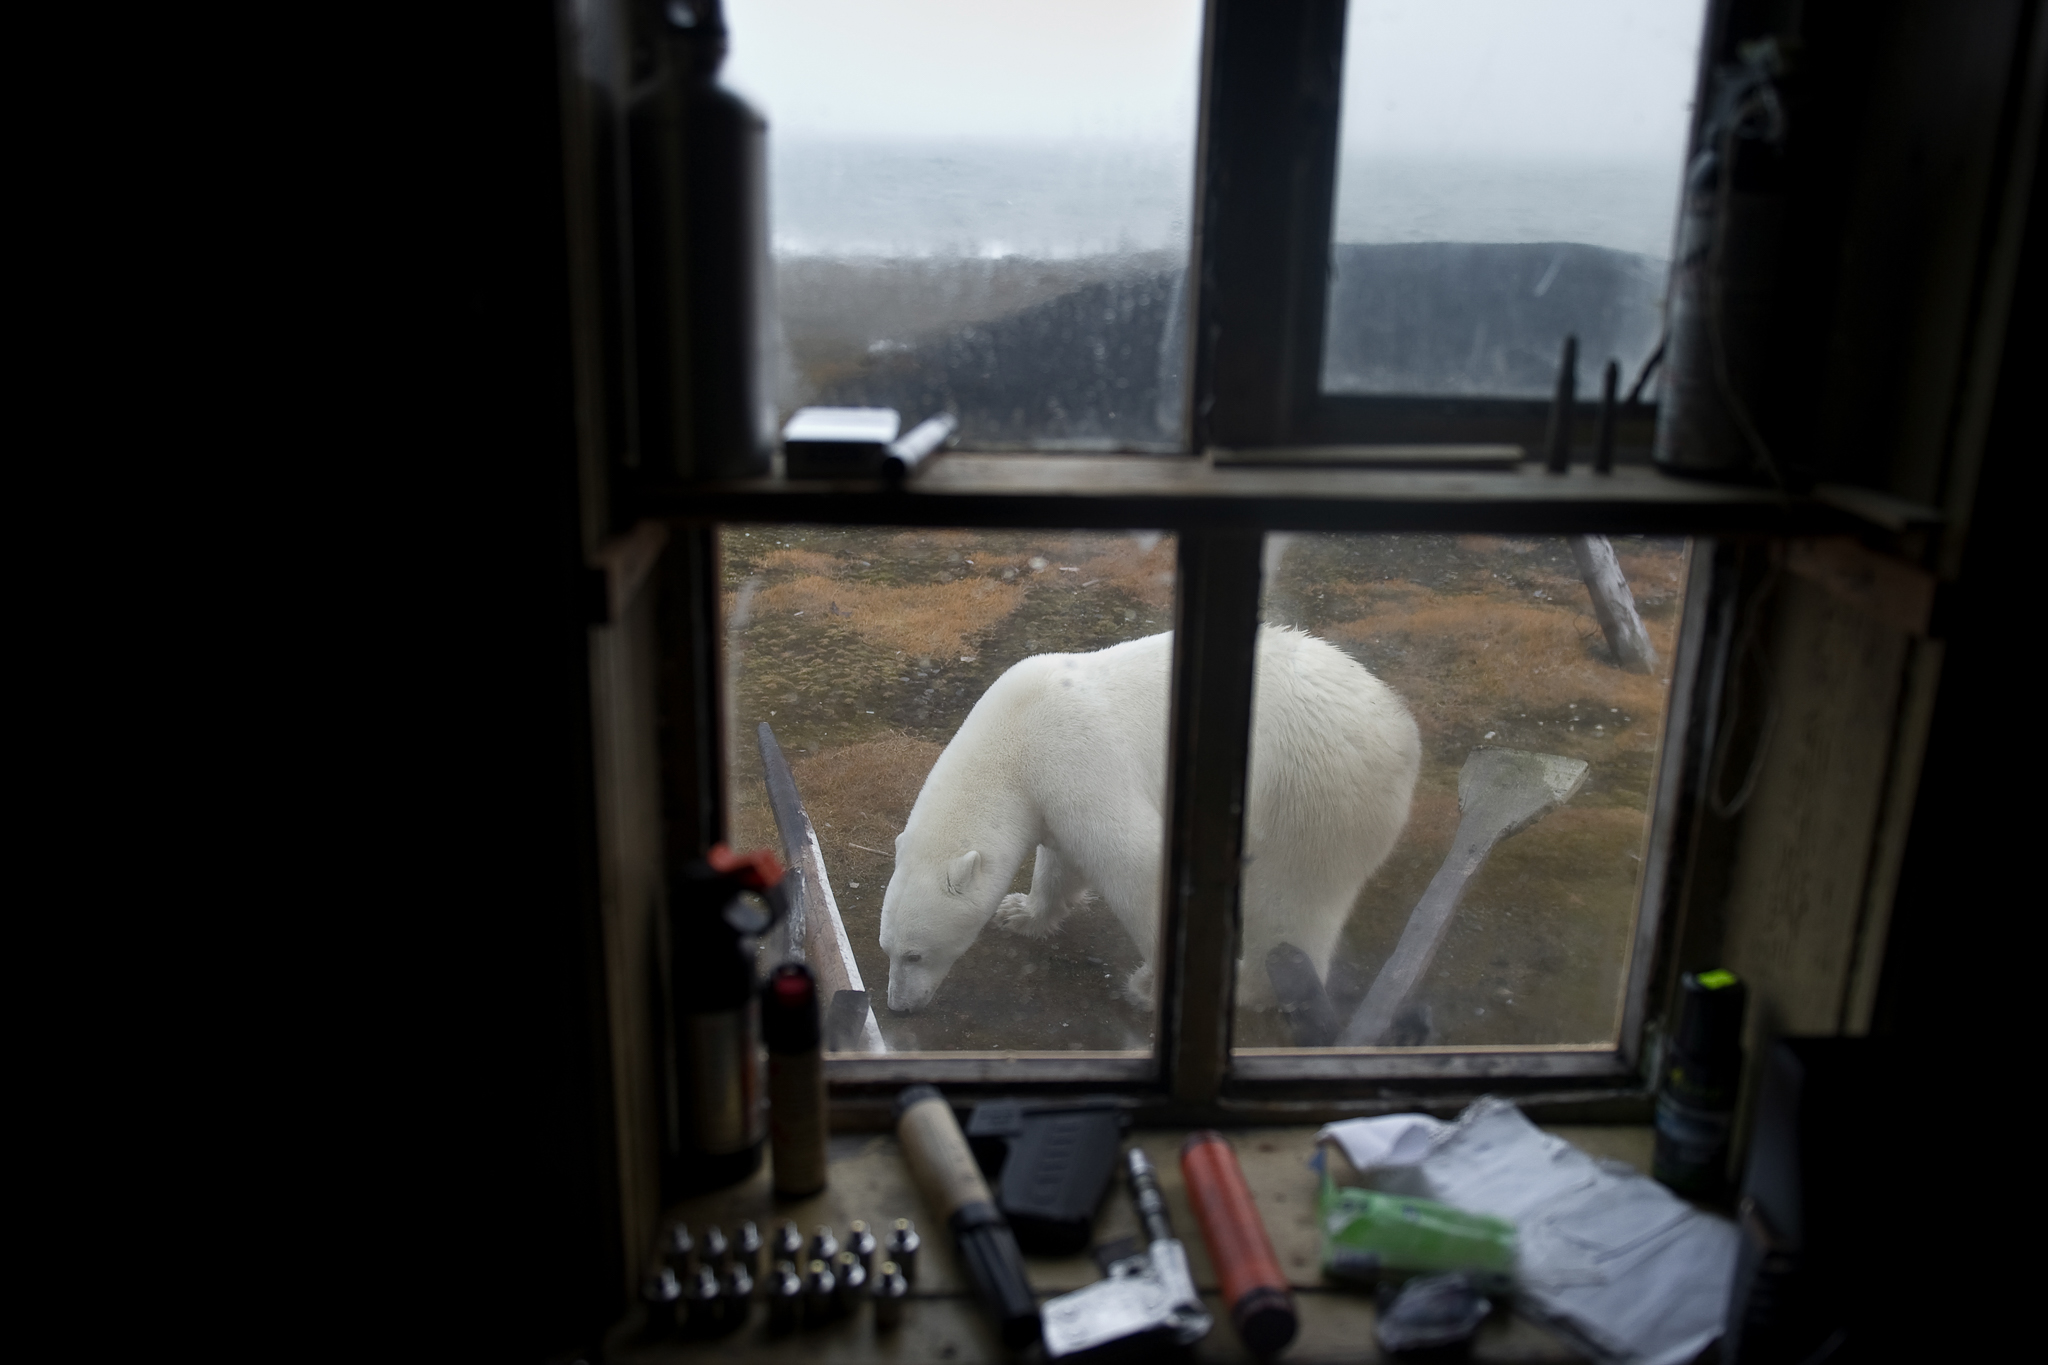 A polar bear can be seen through the window in one of the few buildings on the island. As the human presence on Wrangel grows, some fear an increase in conflicts between bears and people.